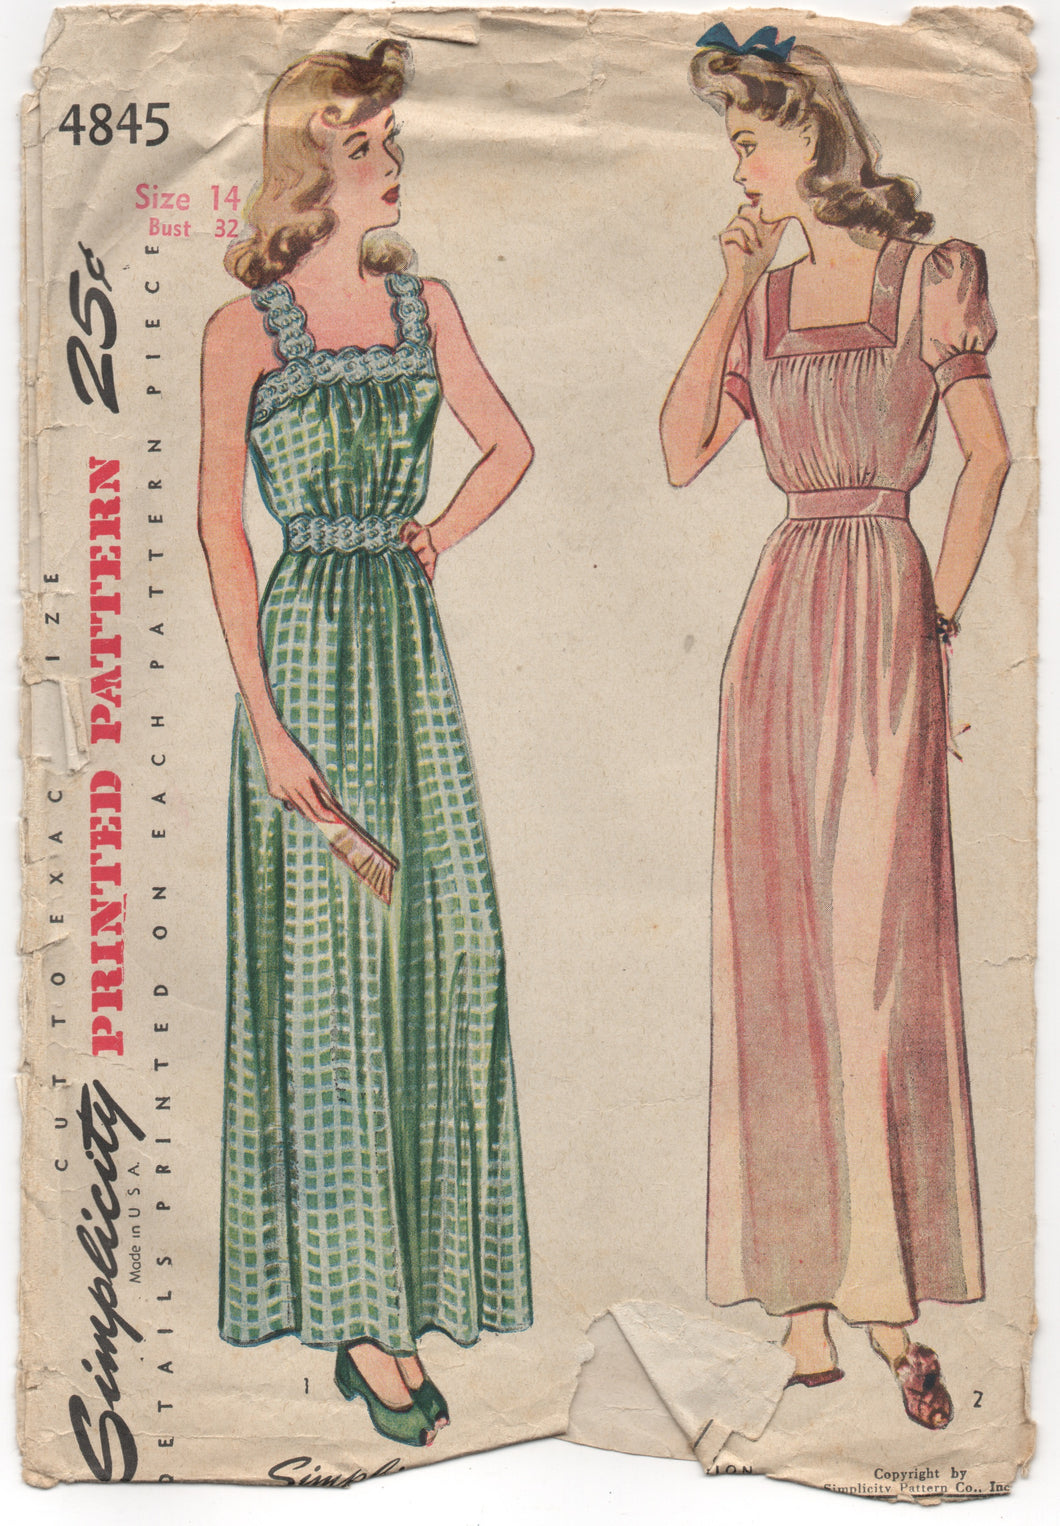 1940's Simplicity Long Nightgown with short sleeves or straps - Bust 32